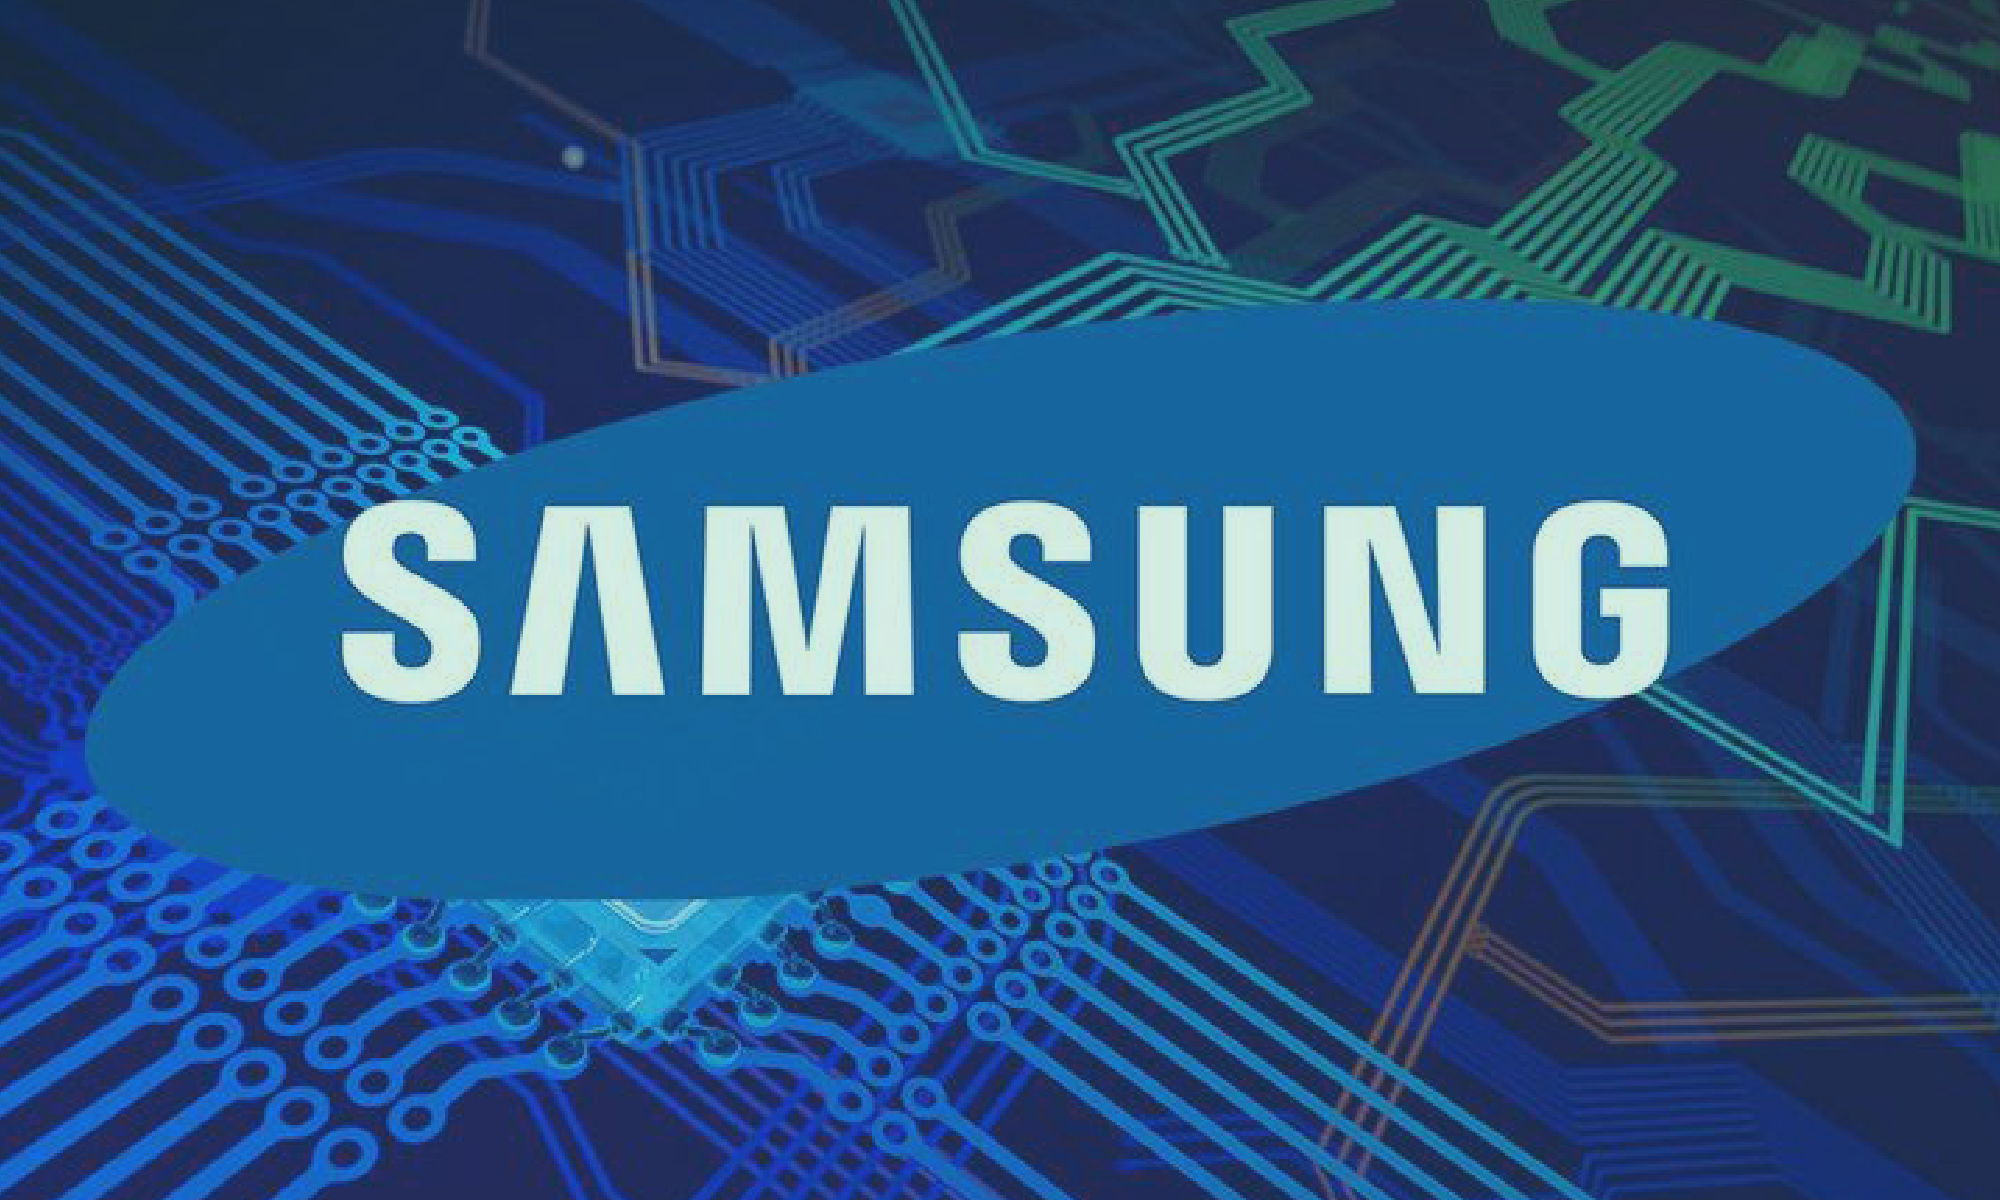 Samsung could be developing its own blockchain phone. By Manuela Miracul